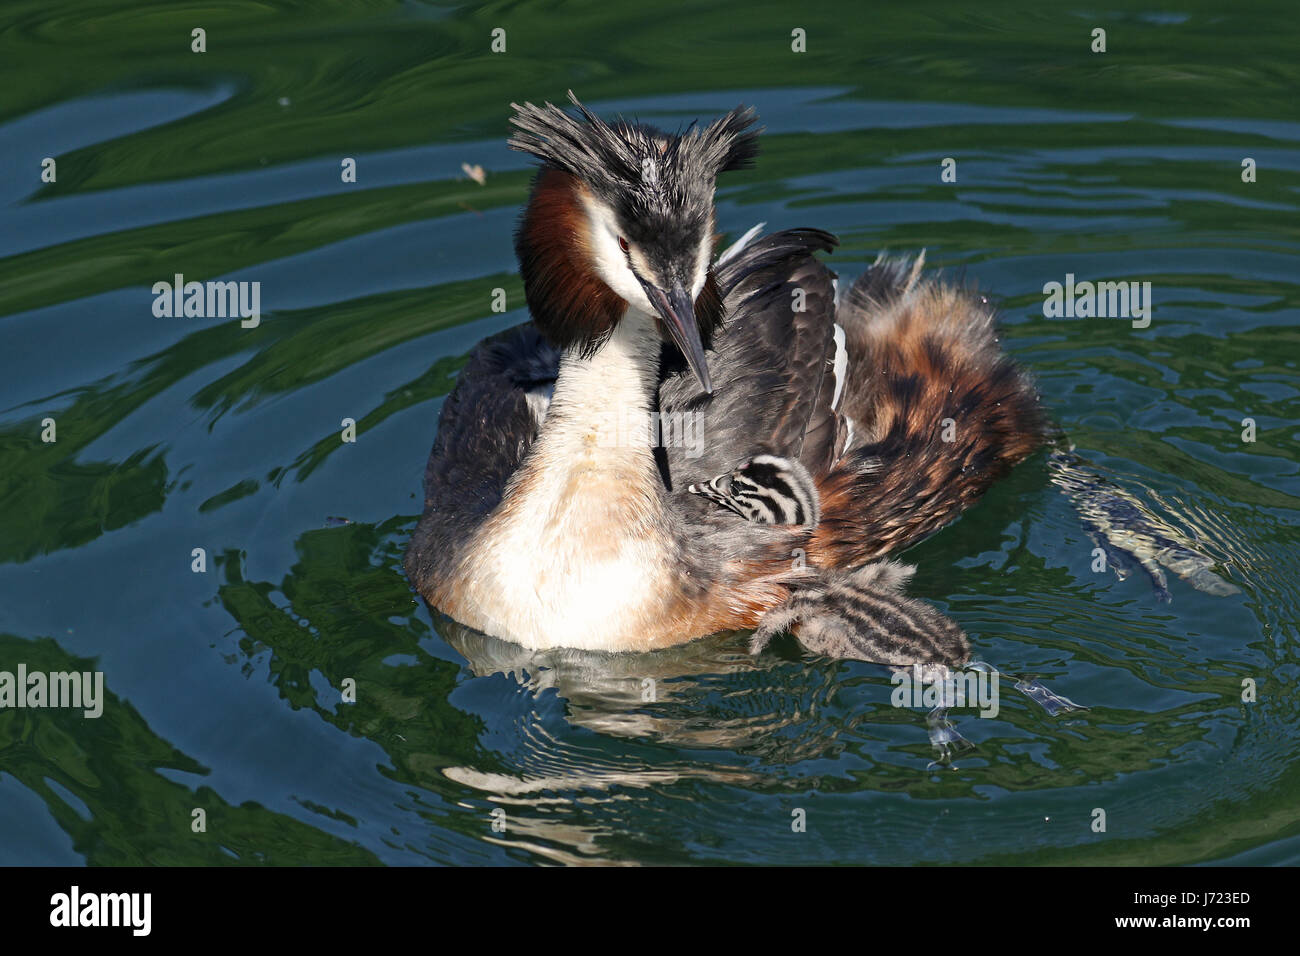 Great crested grebes, Podiceps cristatus, with baby chicks swimming in their natural habitat - Stock Image